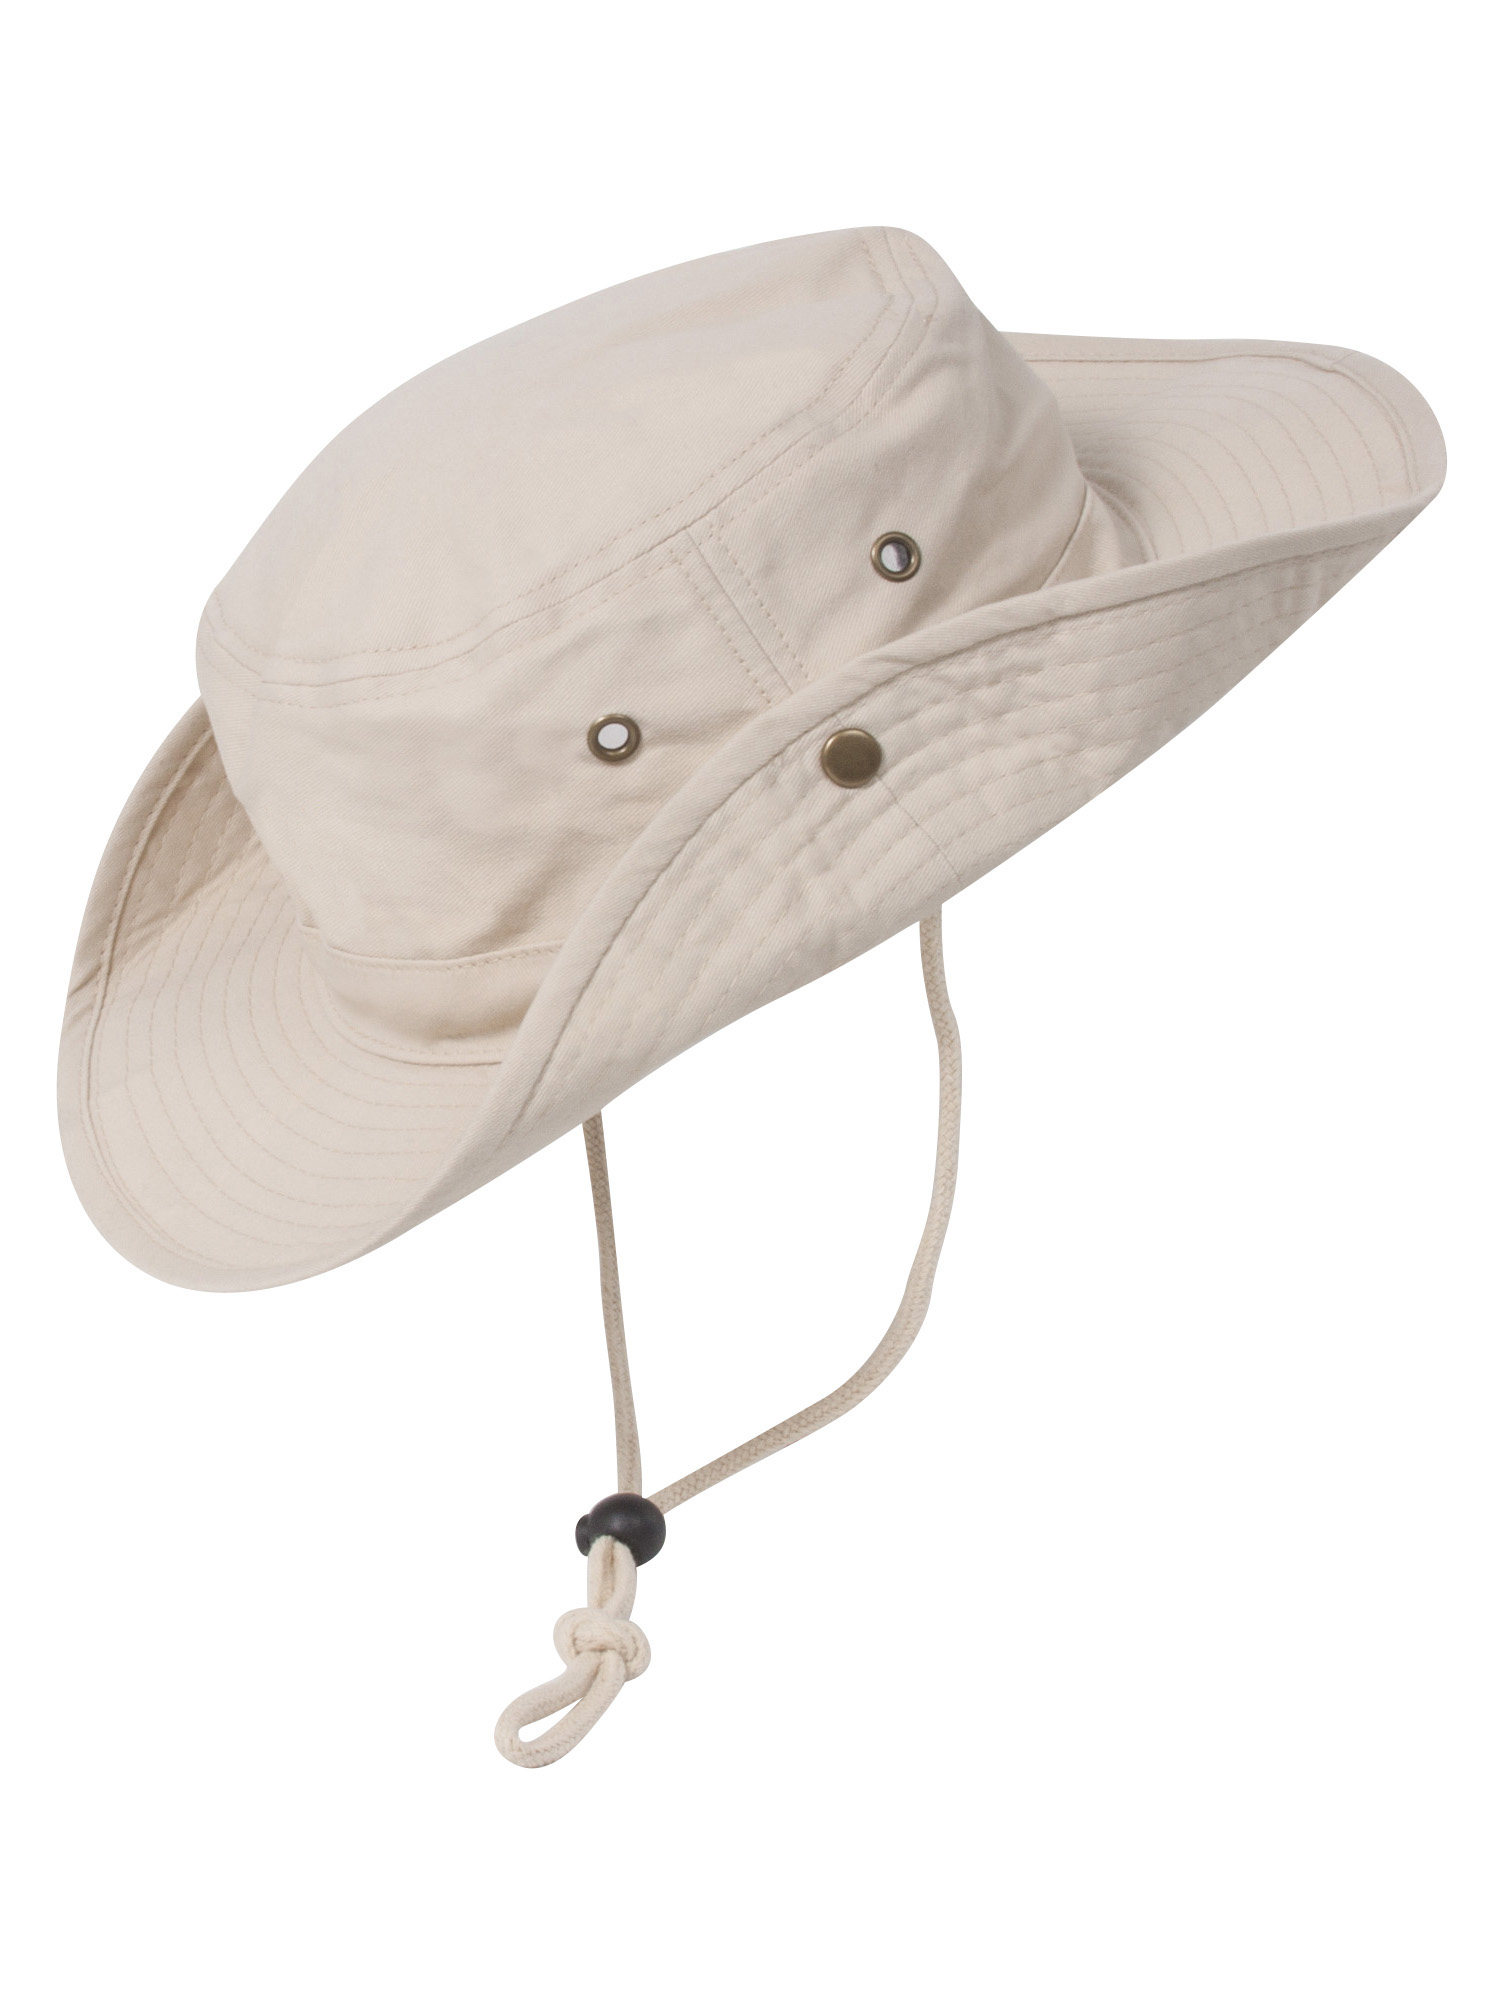 Plain Aussie Cotton Chin Cord Fisherman/'s Hat FREE SHIPPING